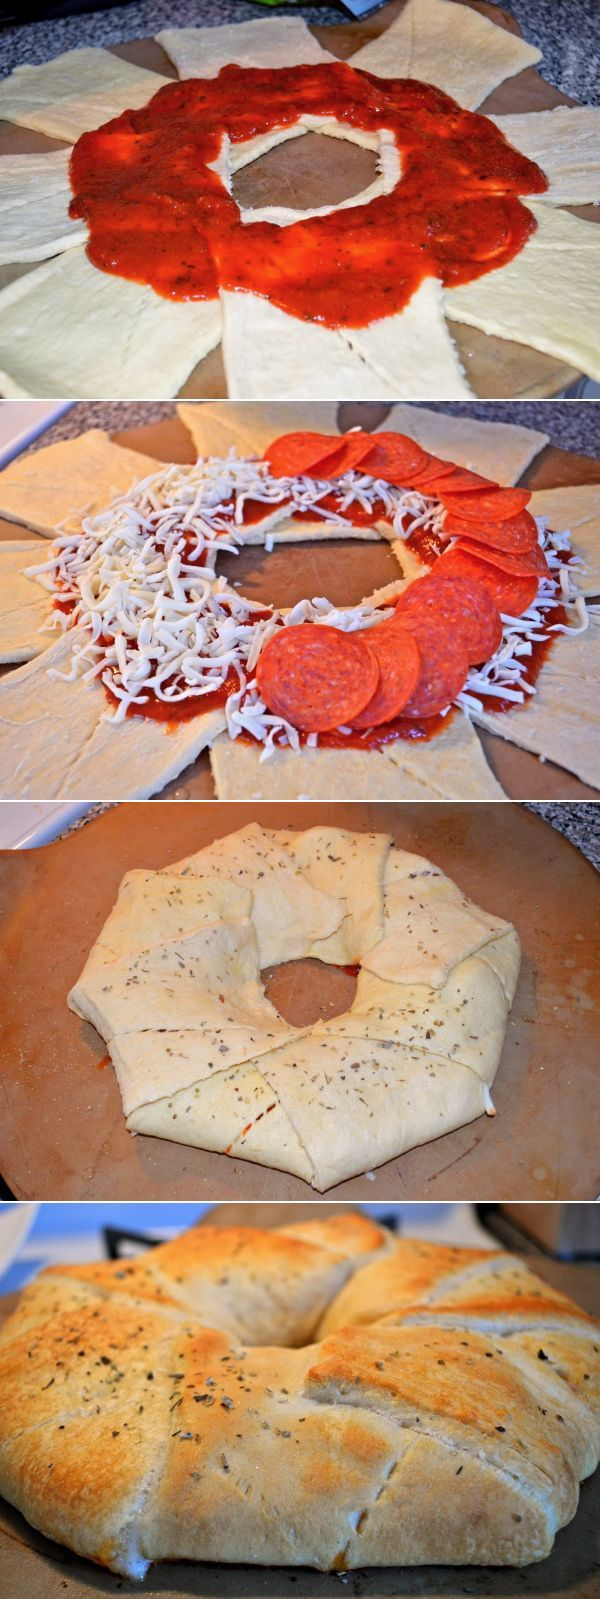 red leather jackets Pizza Ring made with Pillsbury Crescent Roll dough  Great appetizer for any party  And especially easy looking to make if you  39 re the hostess